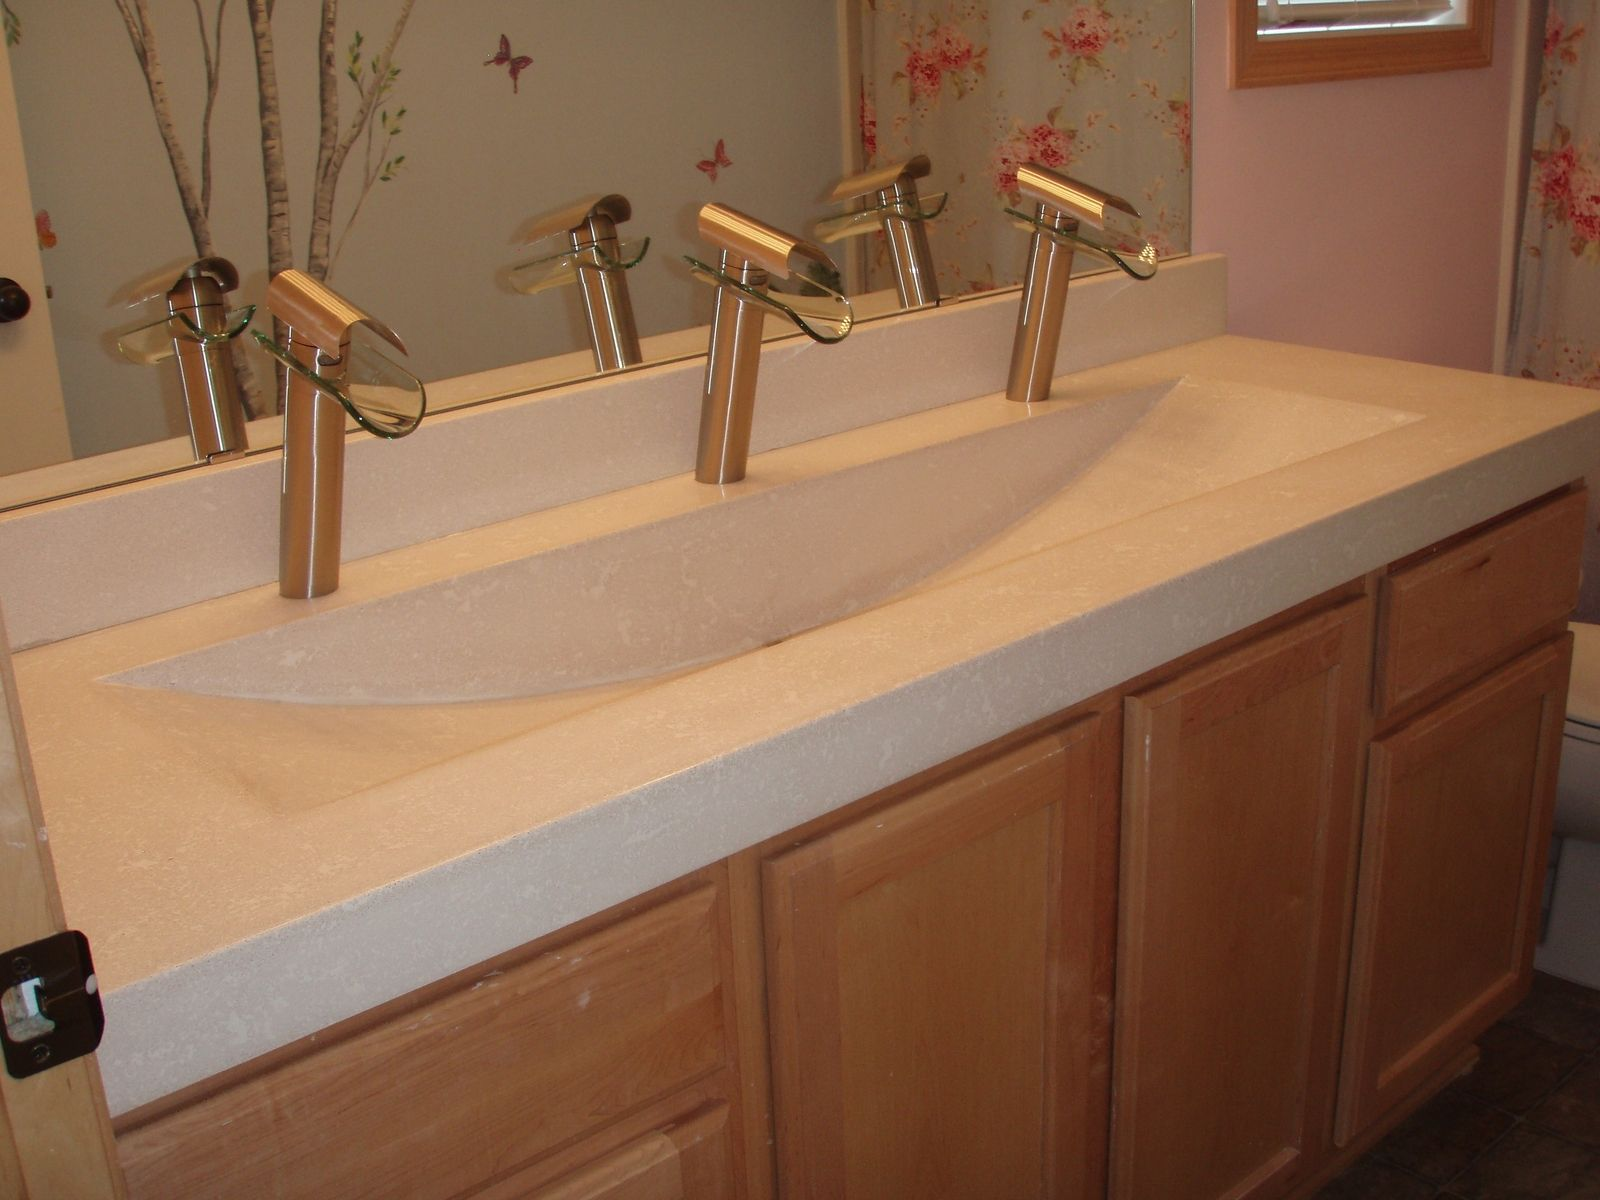 Custom Concrete Sink Accommodating 3 Faucets And 1 Drain